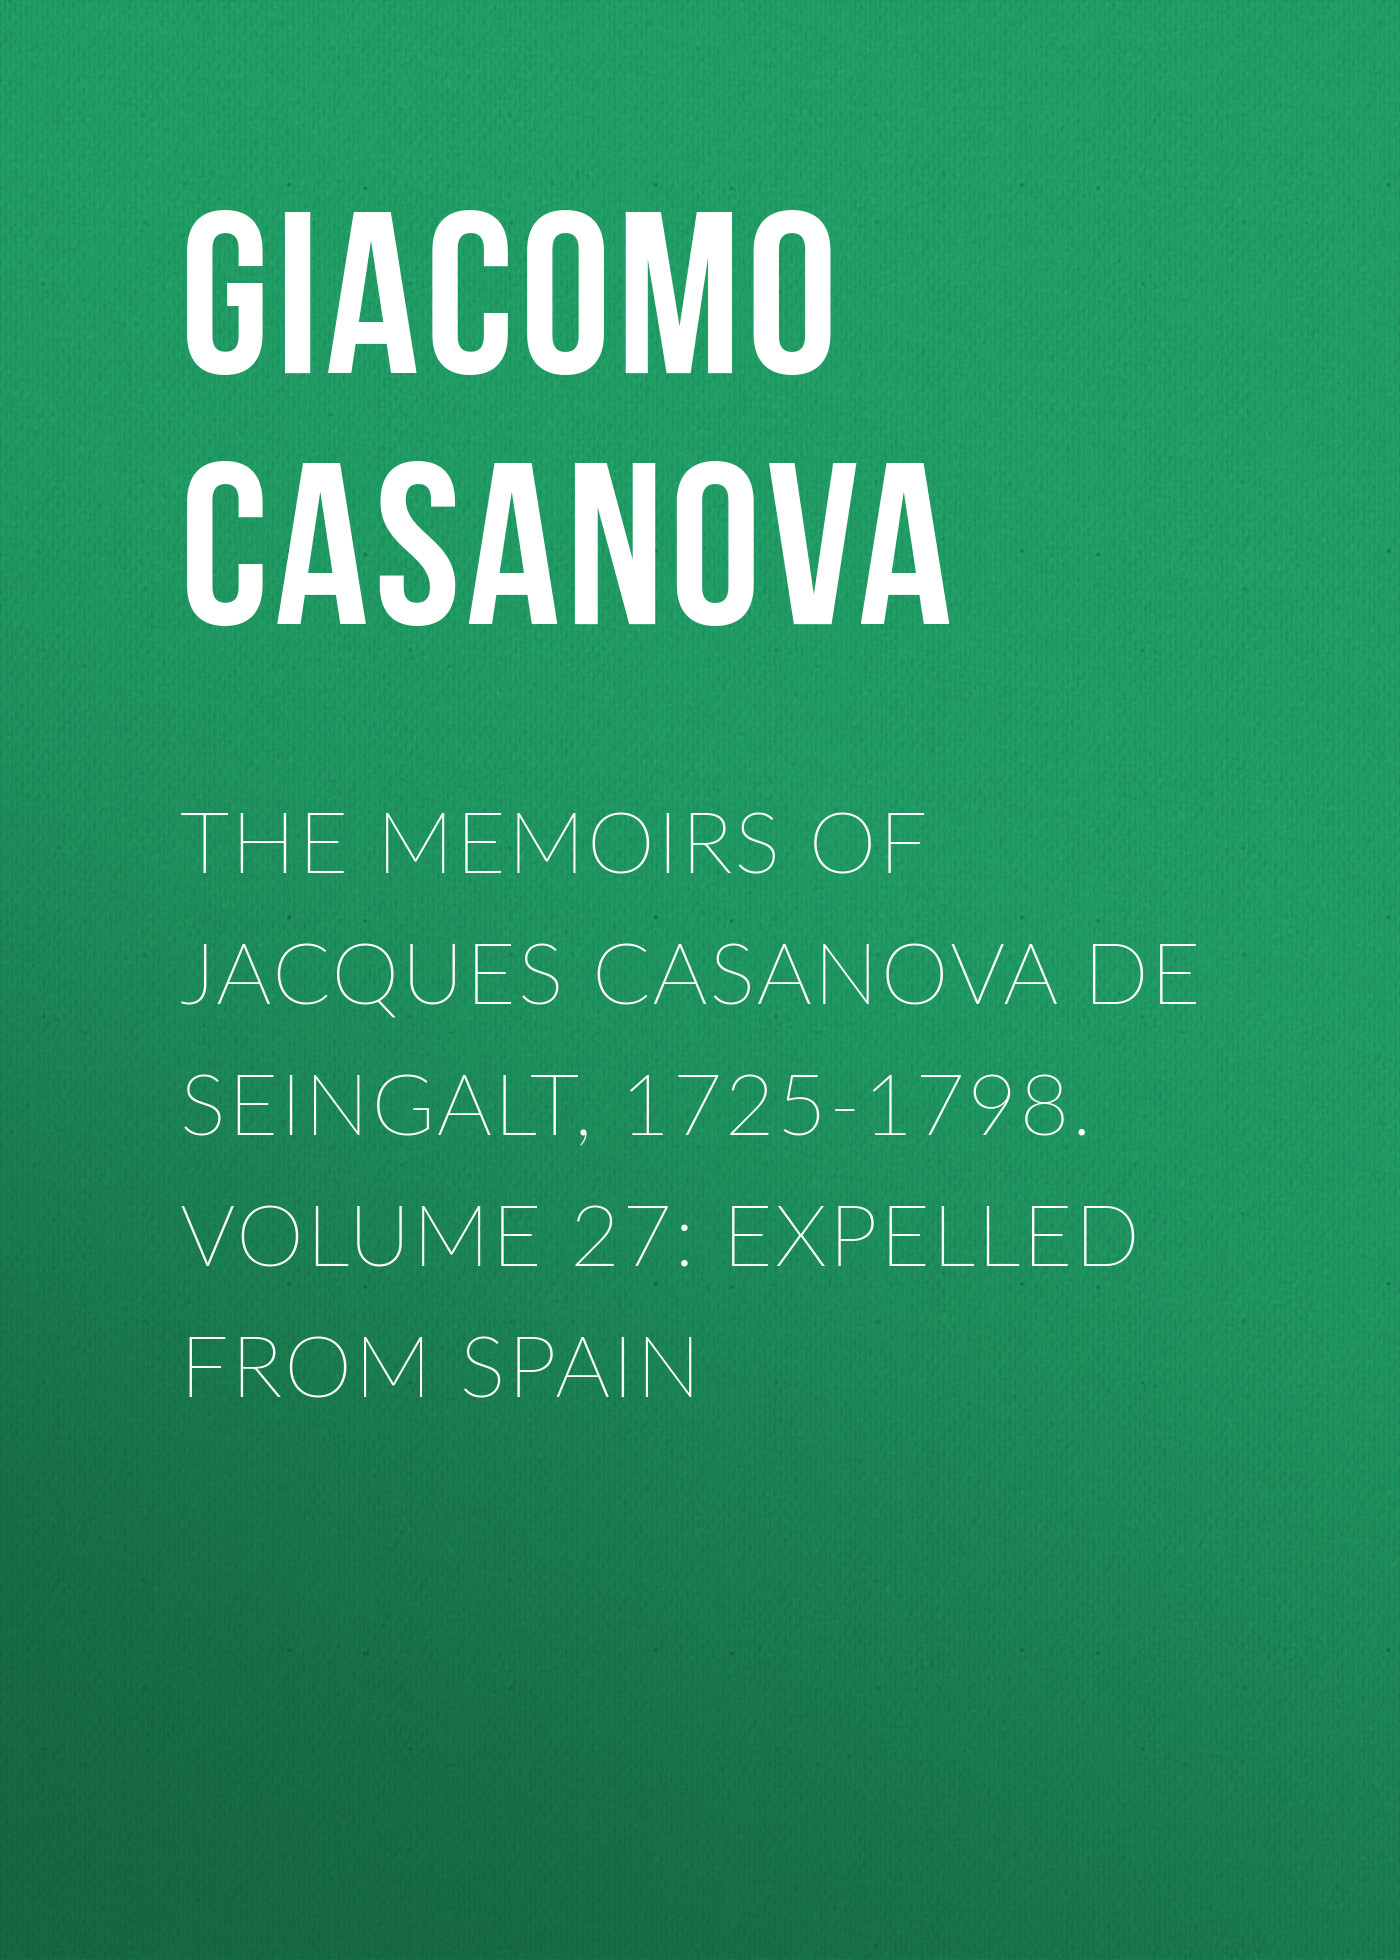 Giacomo Casanova The Memoirs of Jacques Casanova de Seingalt, 1725-1798. Volume 27: Expelled from Spain dostoevsky memoirs from the house